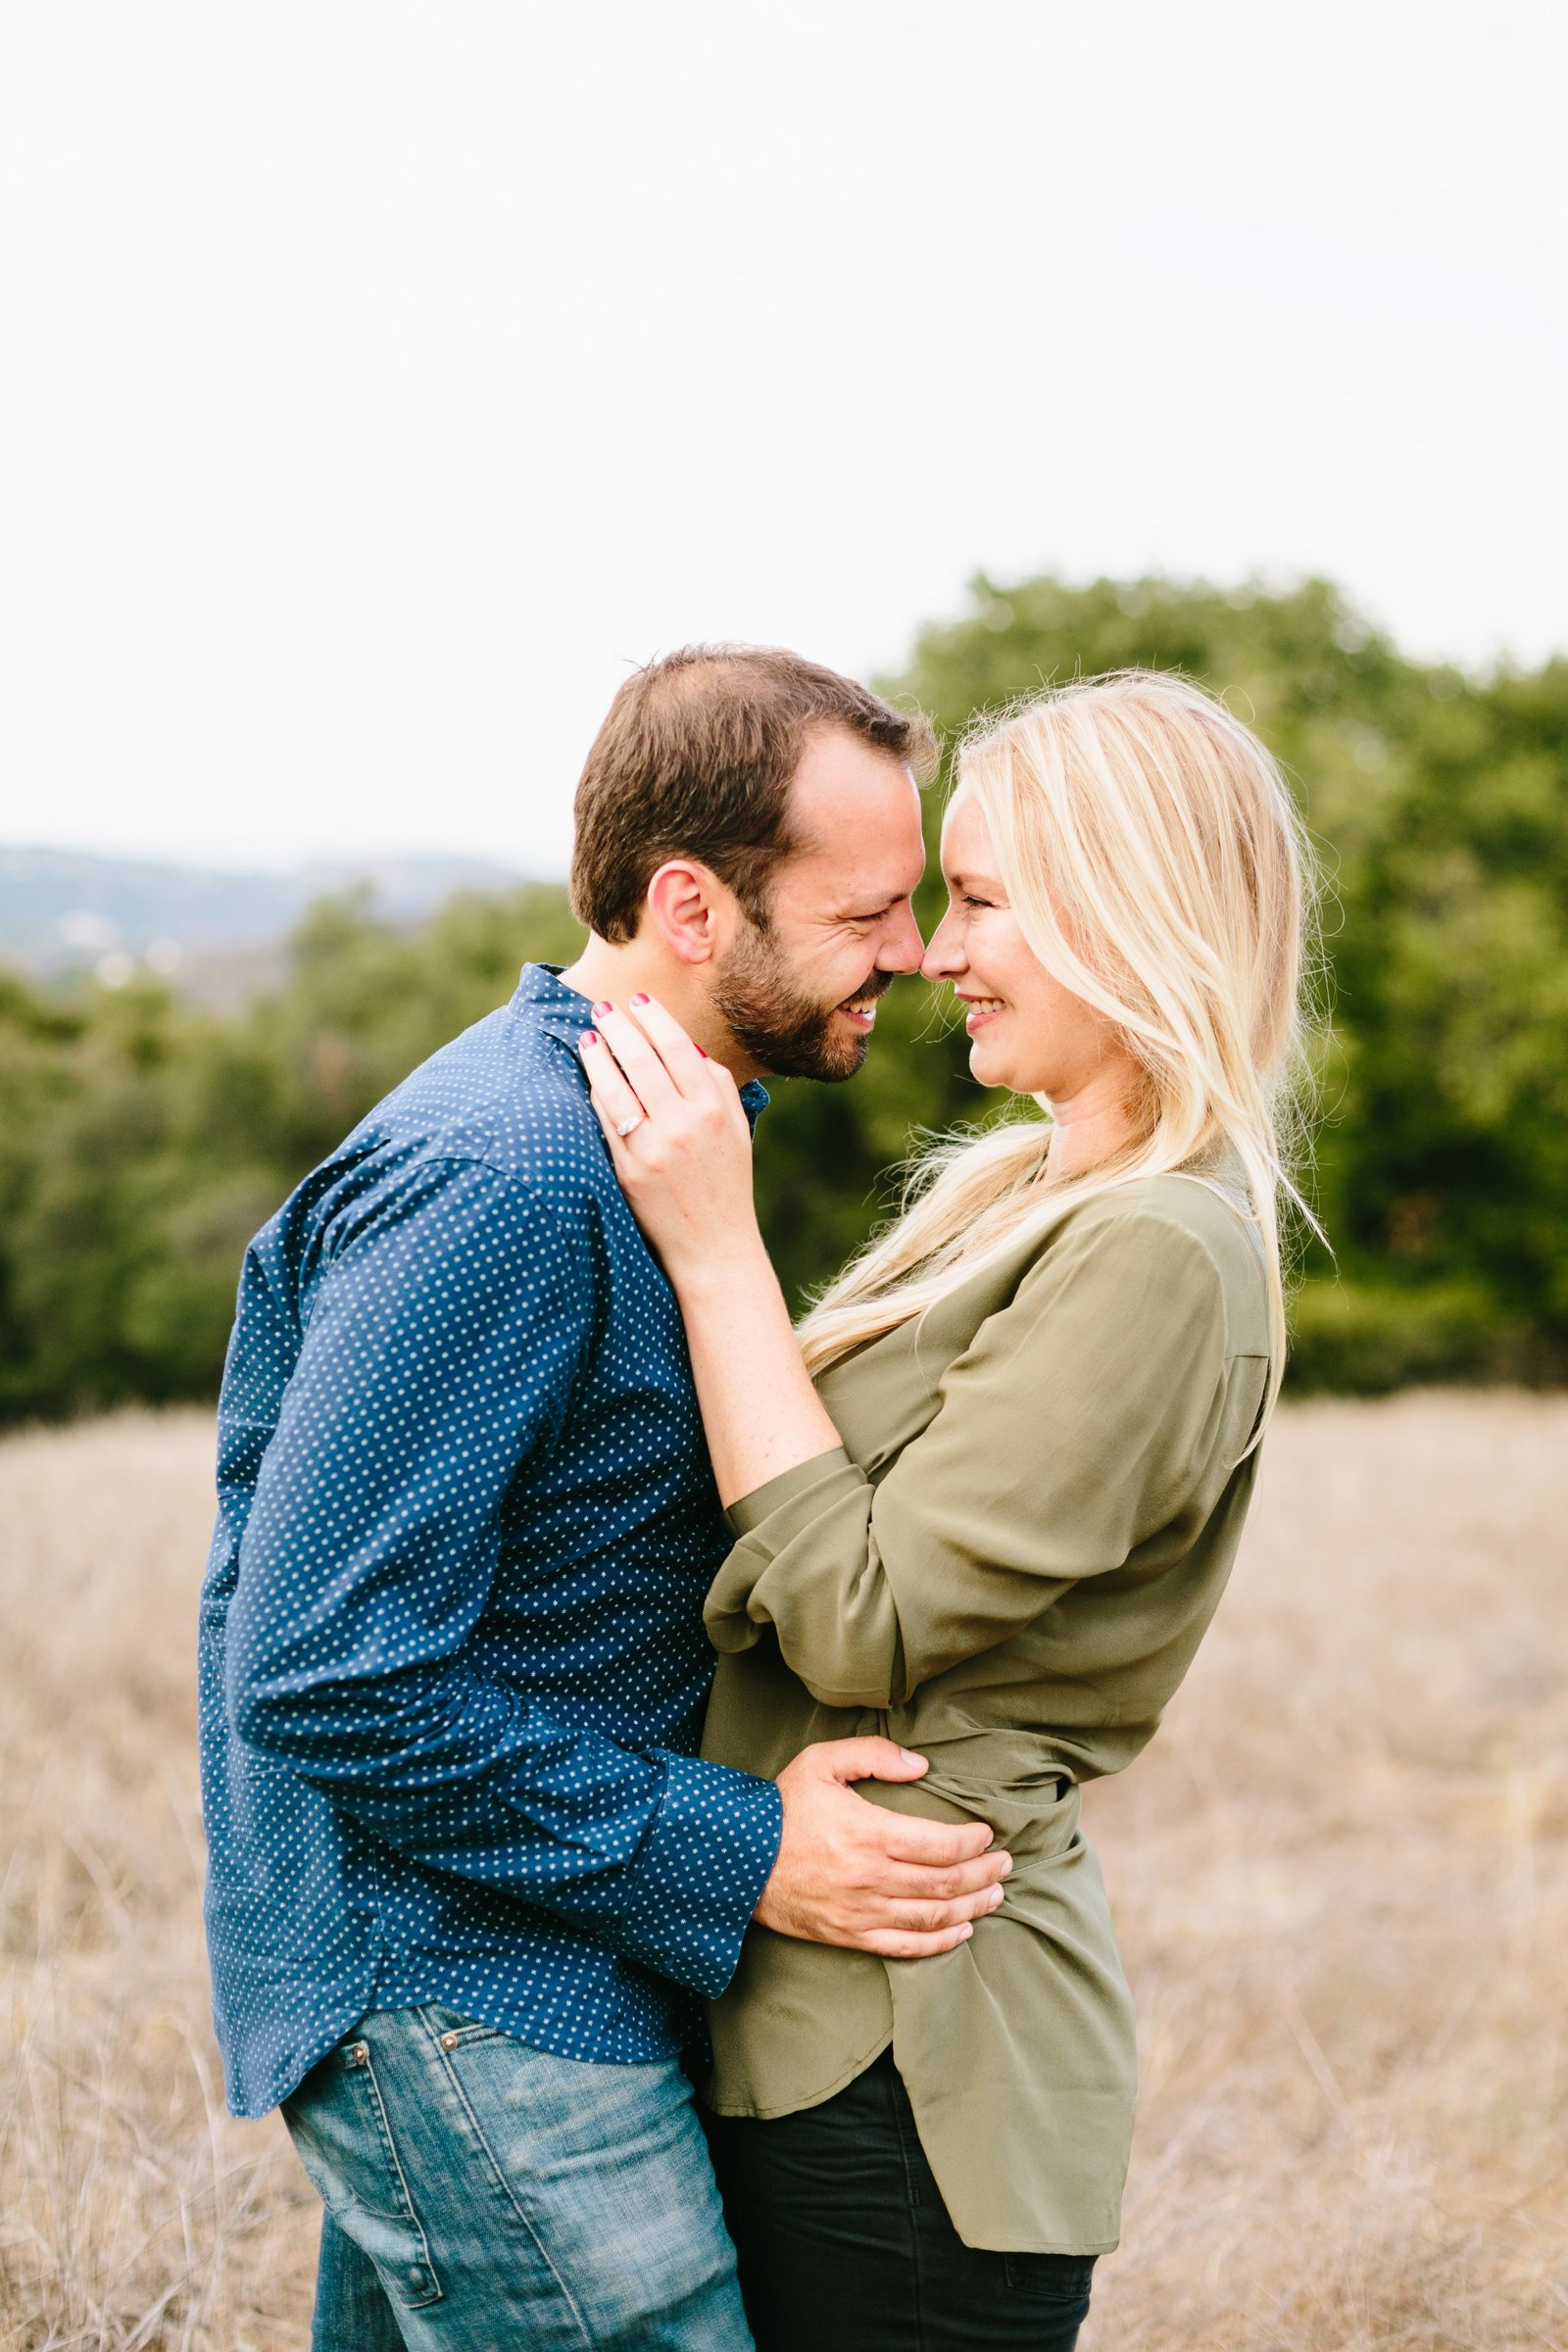 Engagement Photos-Jodee Debes Photography-087